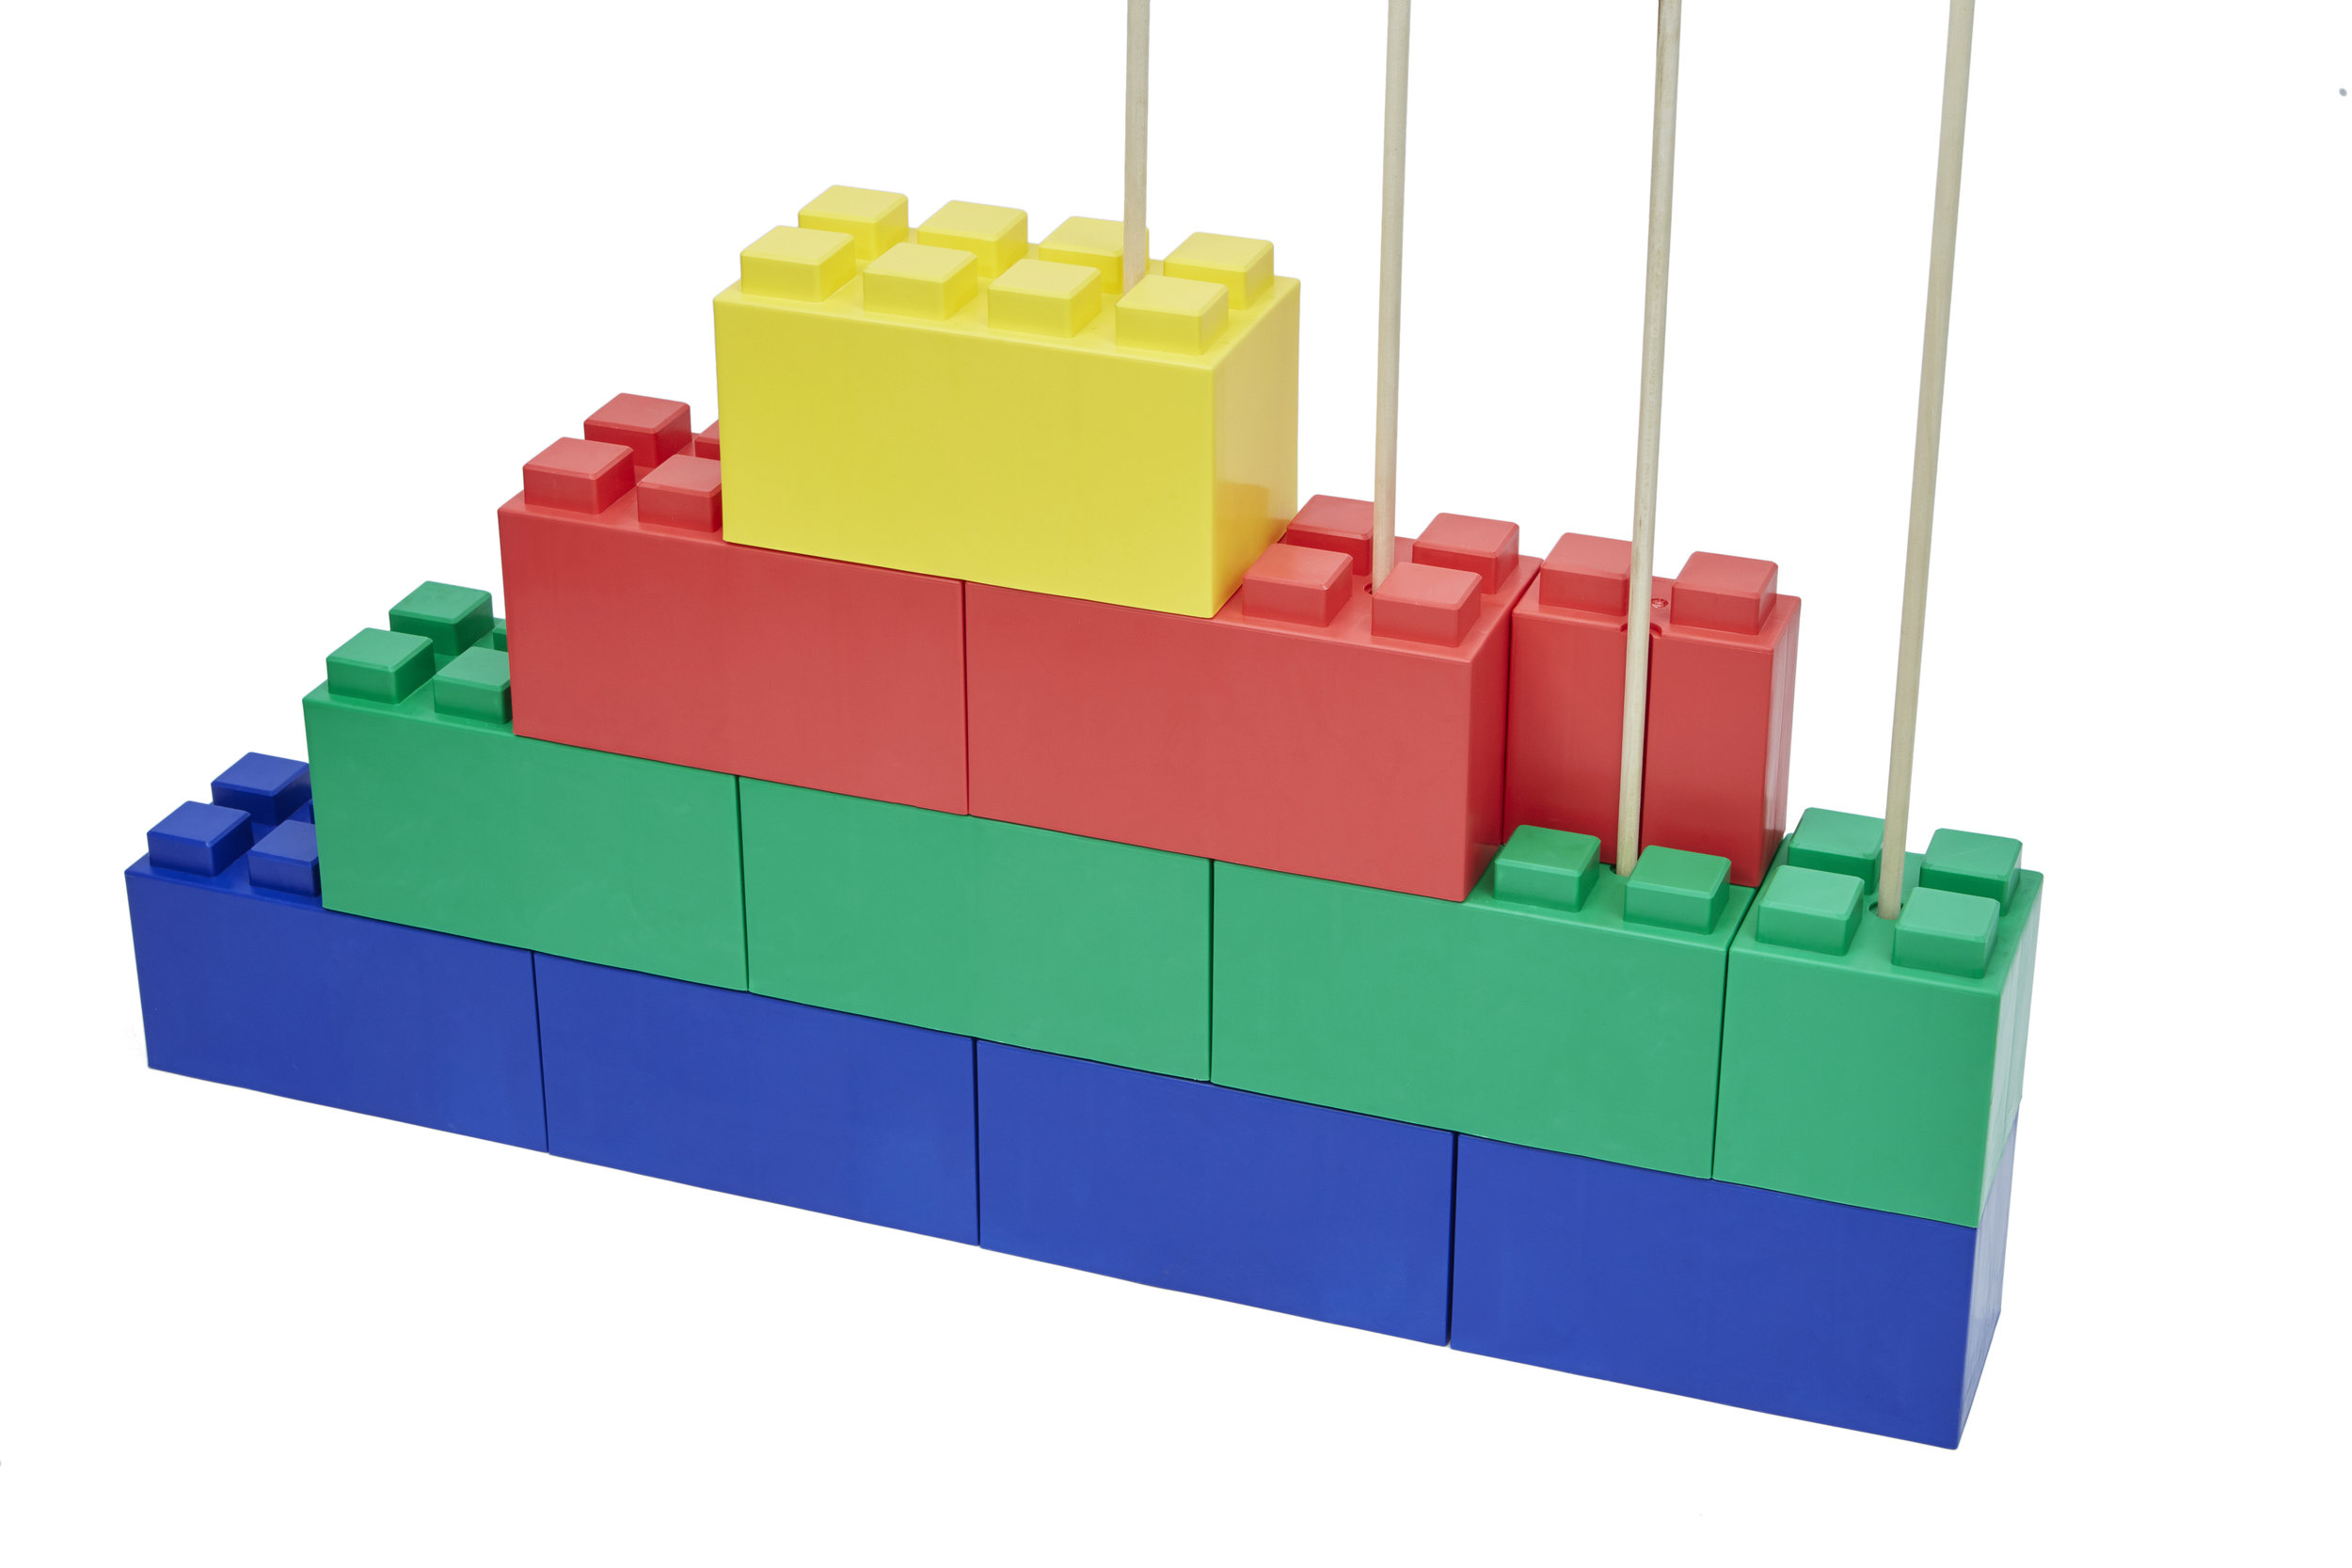 """Insert 1/2"""" wooden dowels to lock blocks together and provide additional support"""